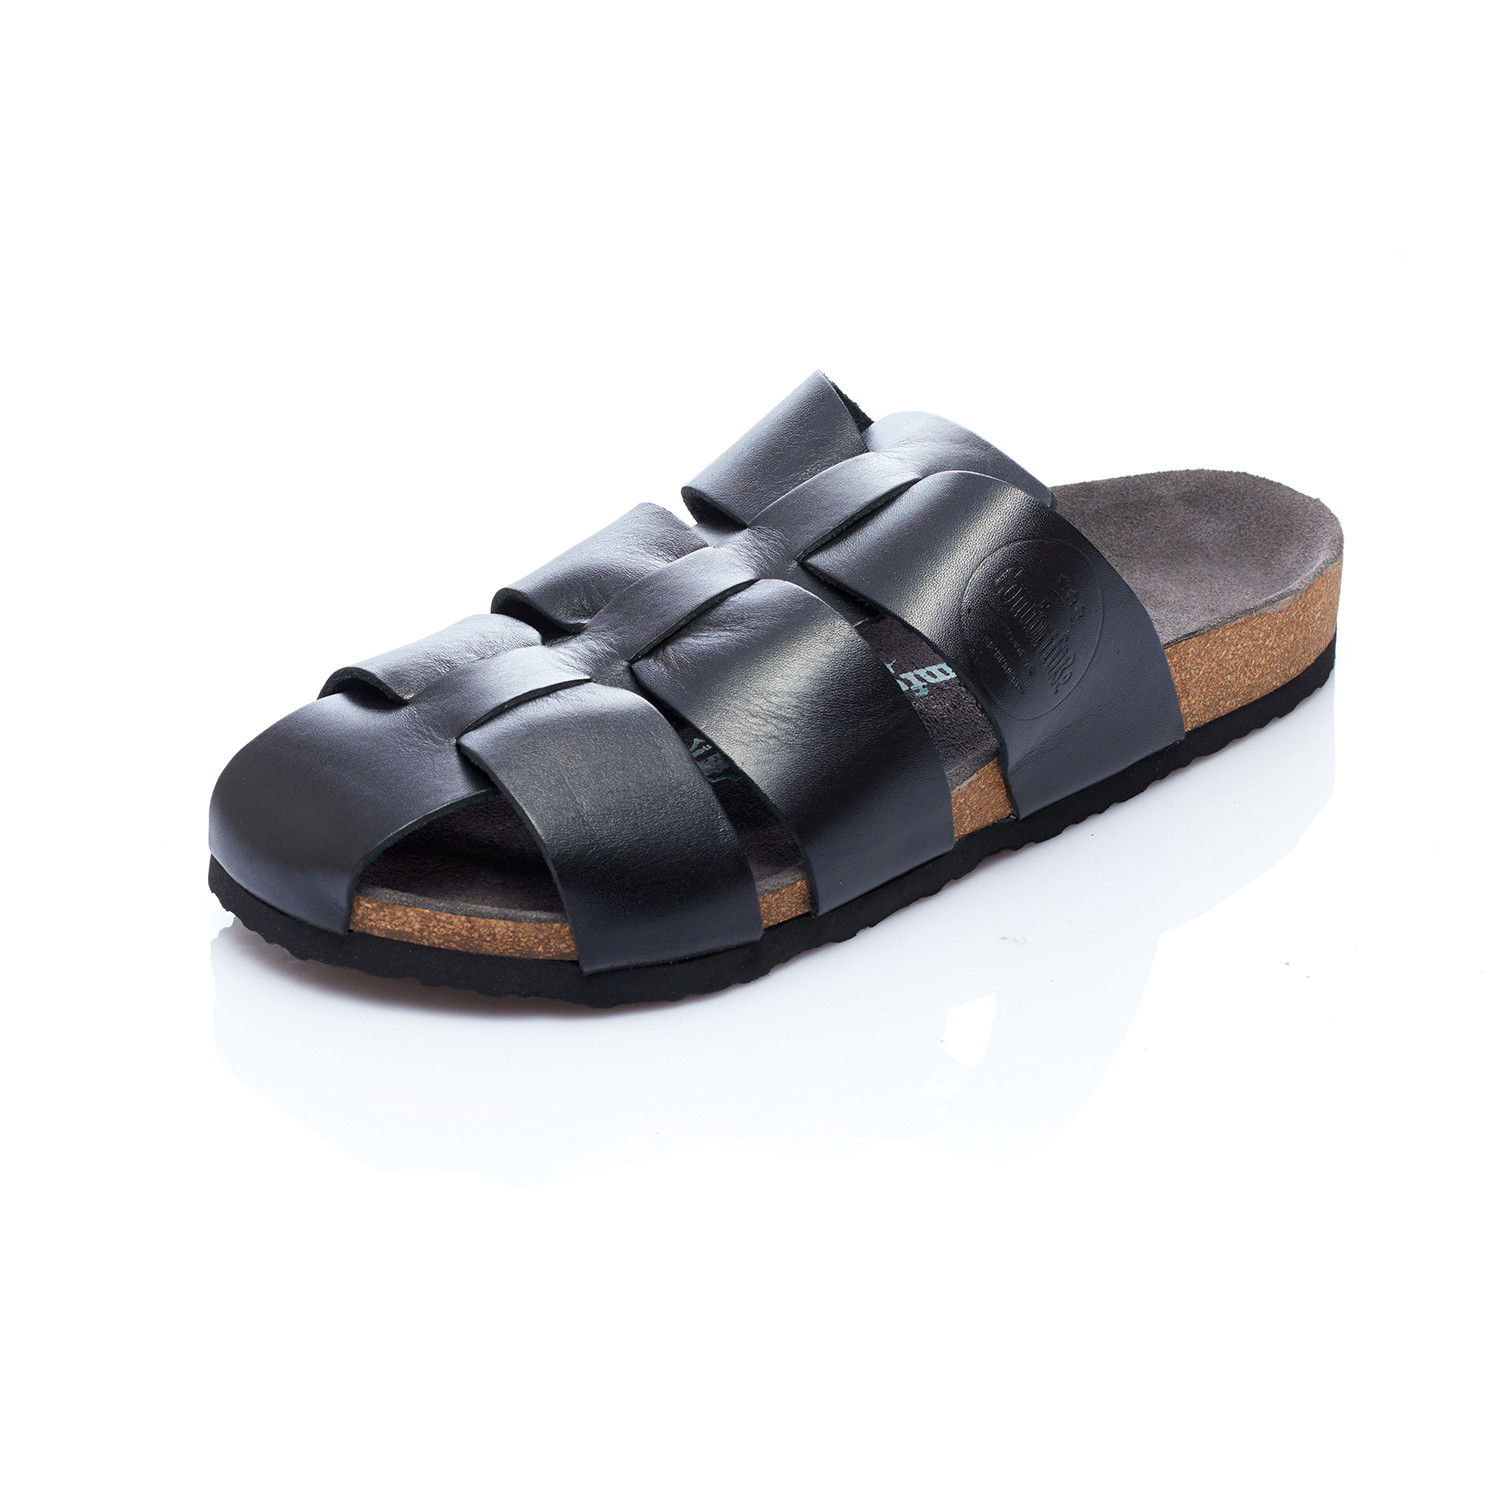 4deffac026ac Fred Sandal    Black (Euro  45) - Comfortfusse - Touch of Modern